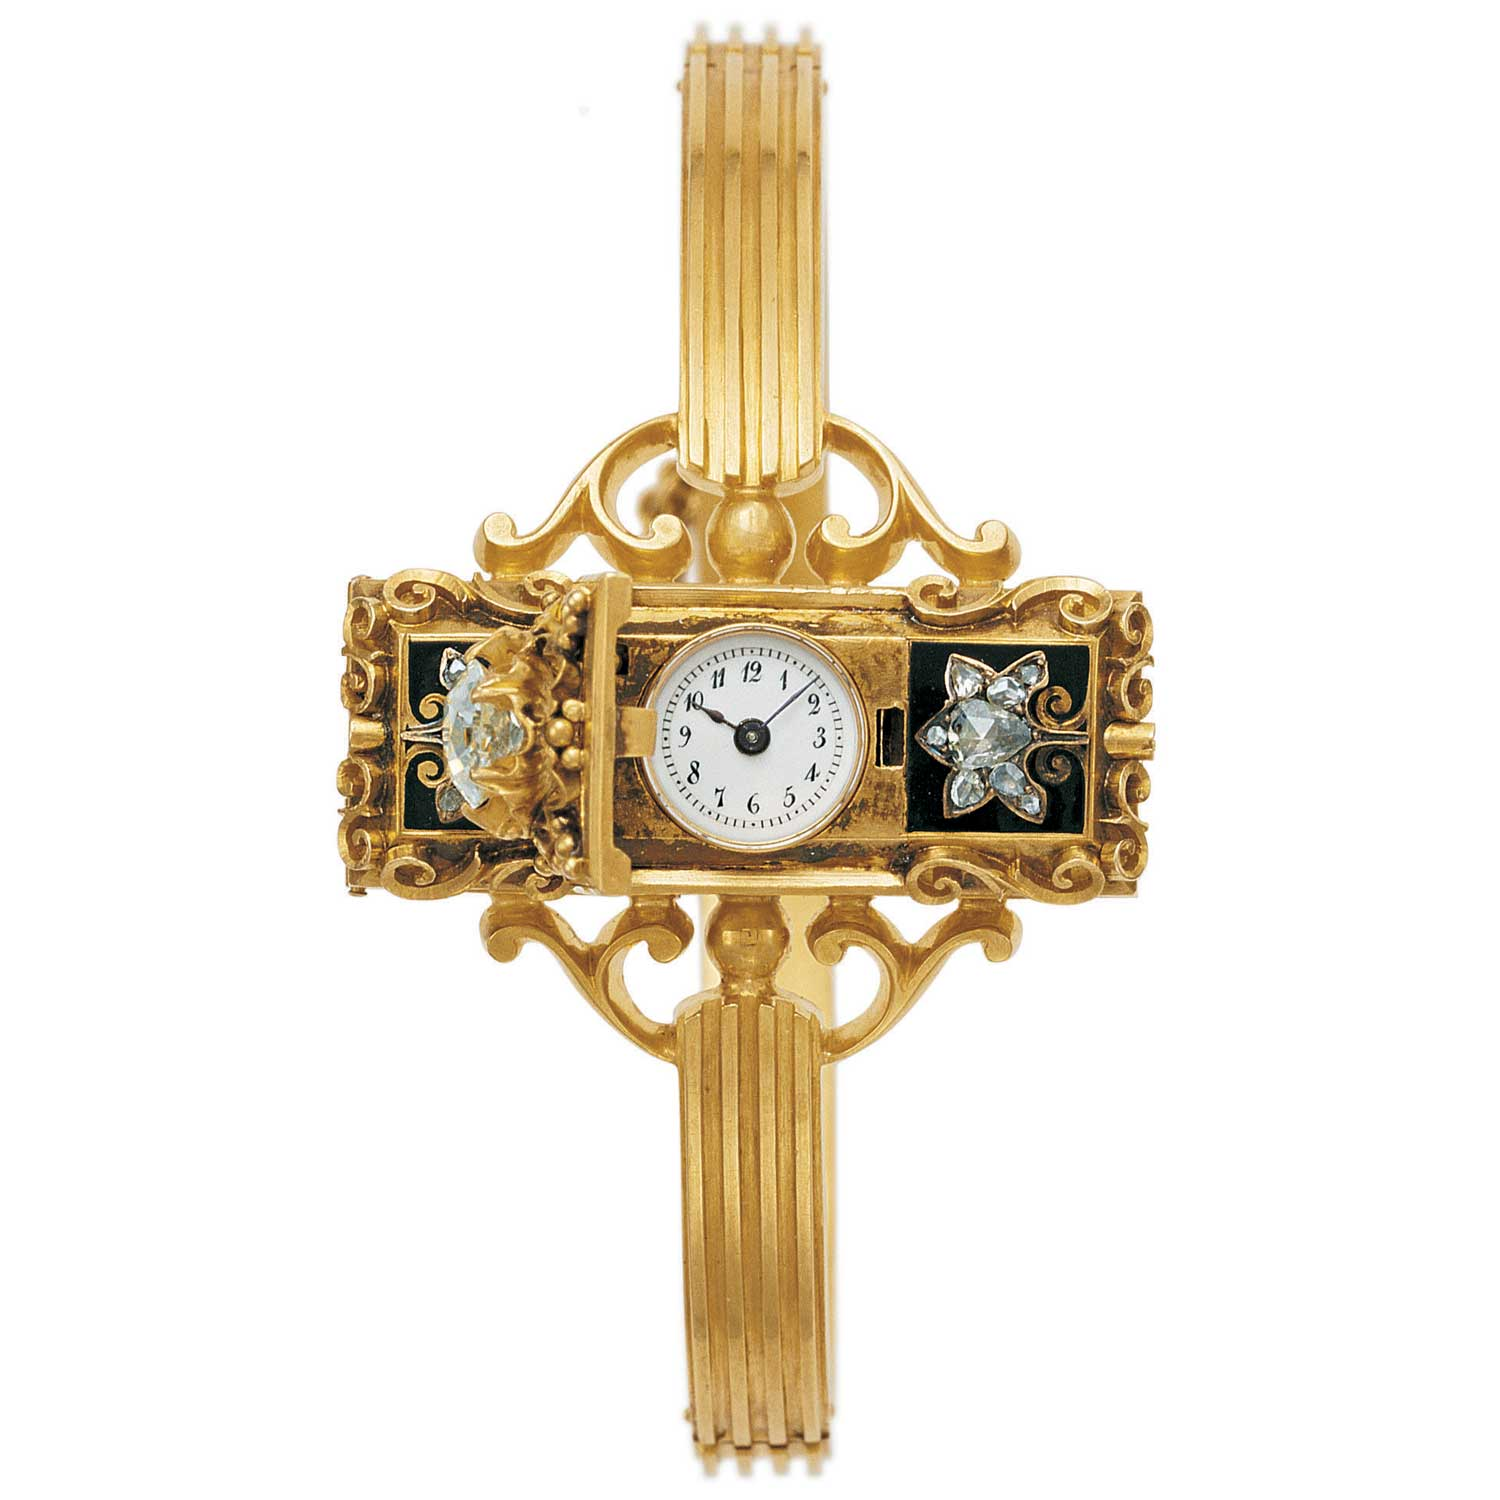 1968: Patek Philippe creates the first Swiss wristwatch, made for Countess Koscowicz of Hungary